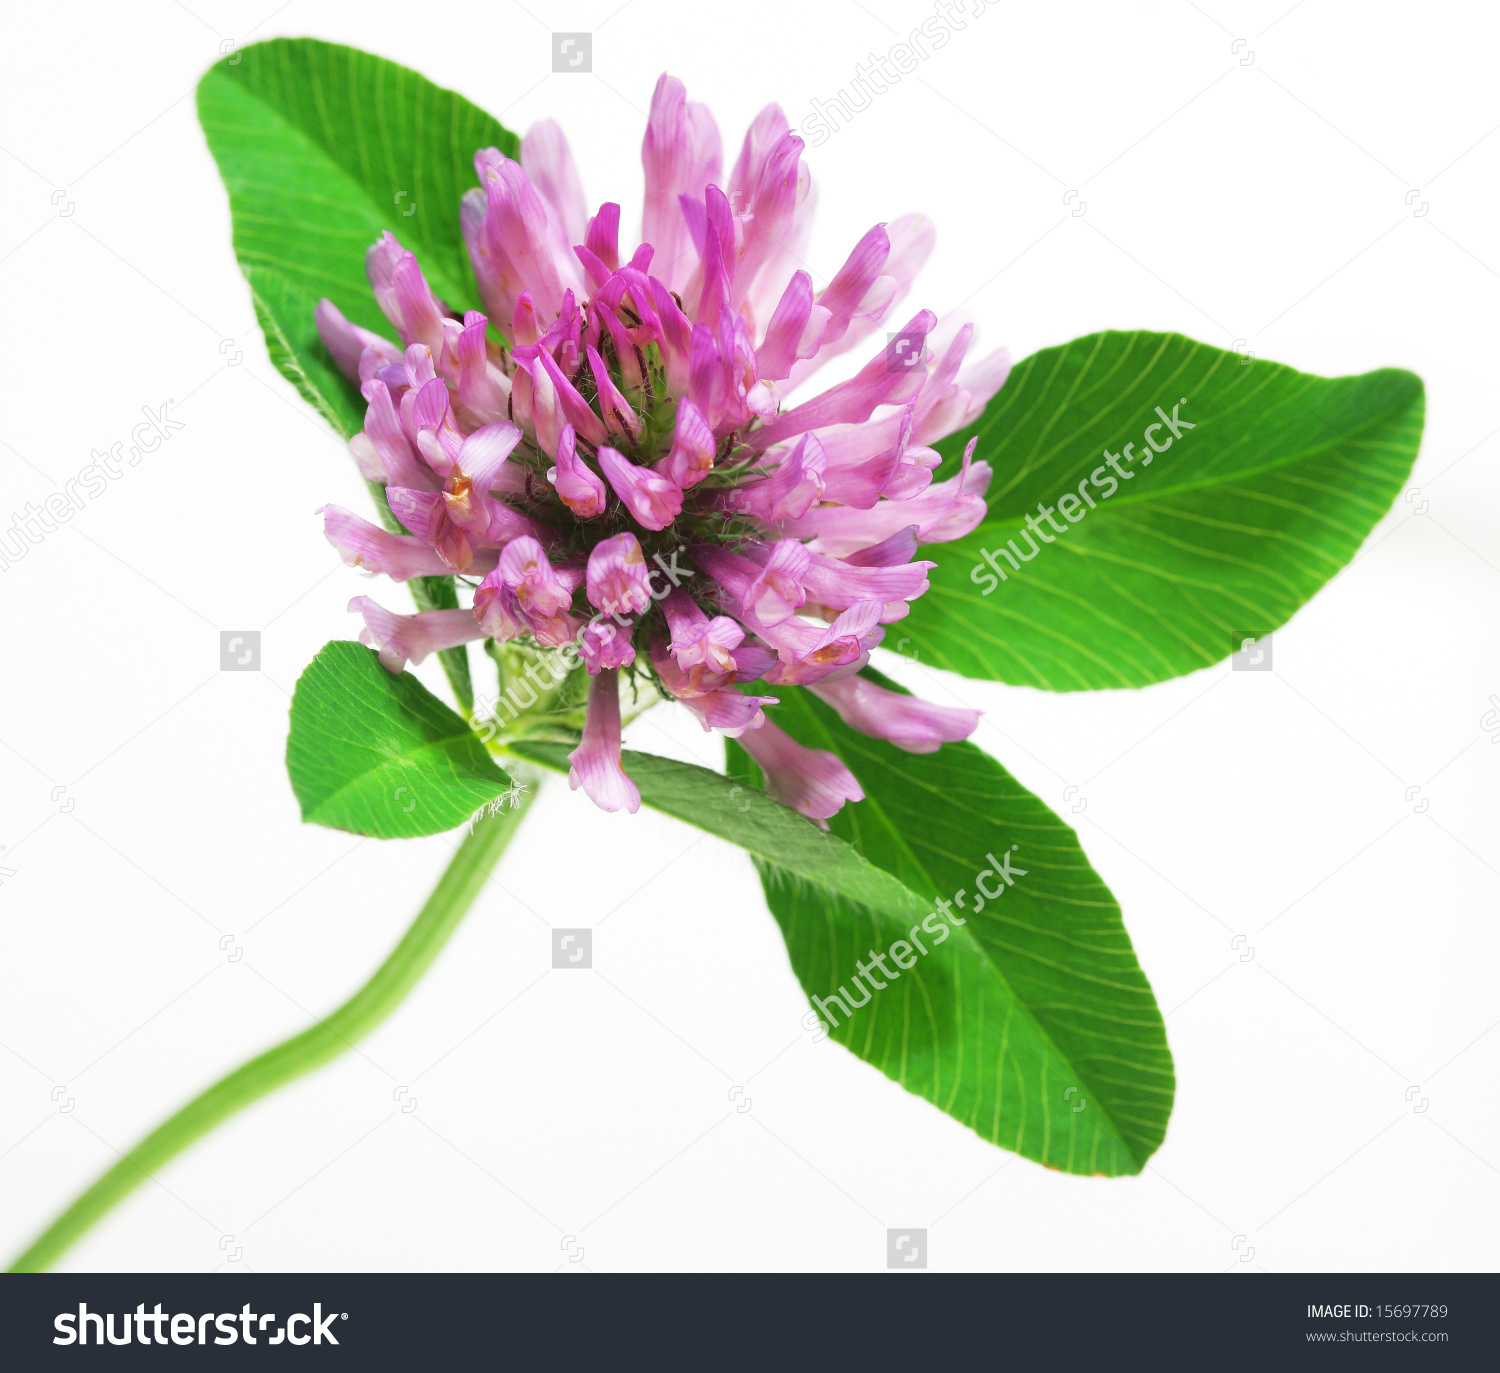 Trifolium Pratense Red Clover Flower And Leaves Isolated On White.